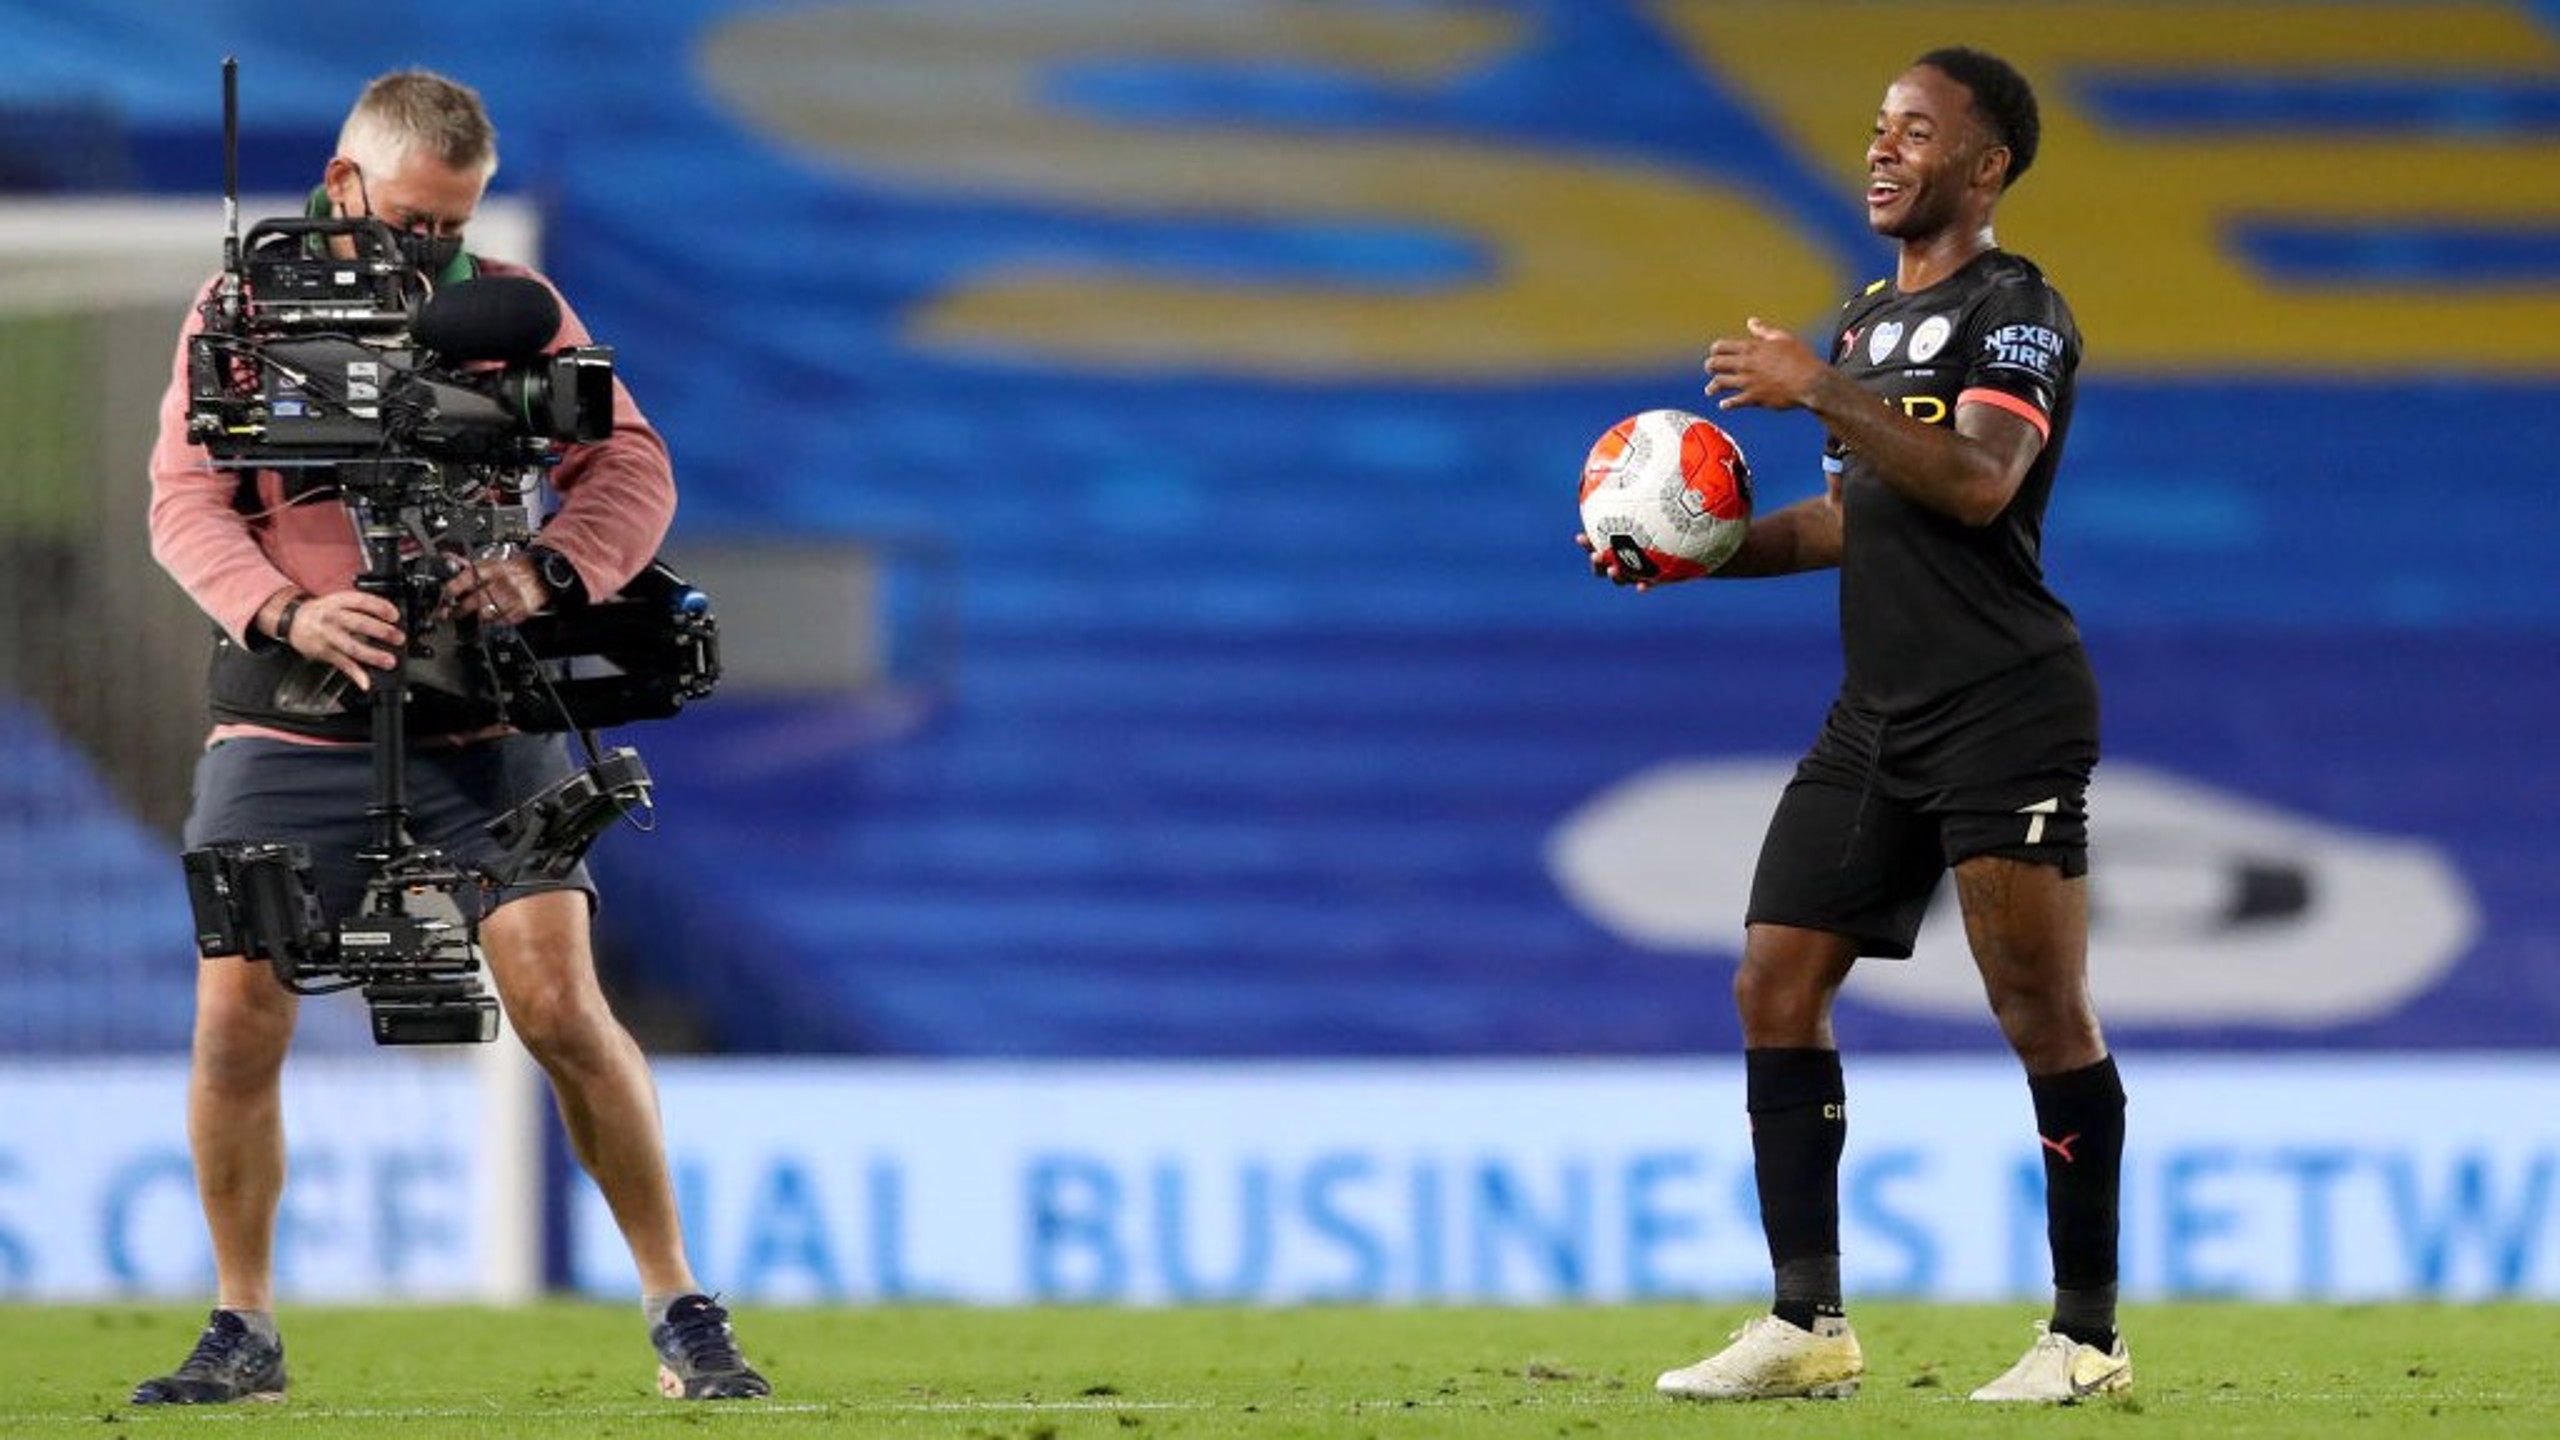 HAVING A BALL: A night to remember for the England winger!